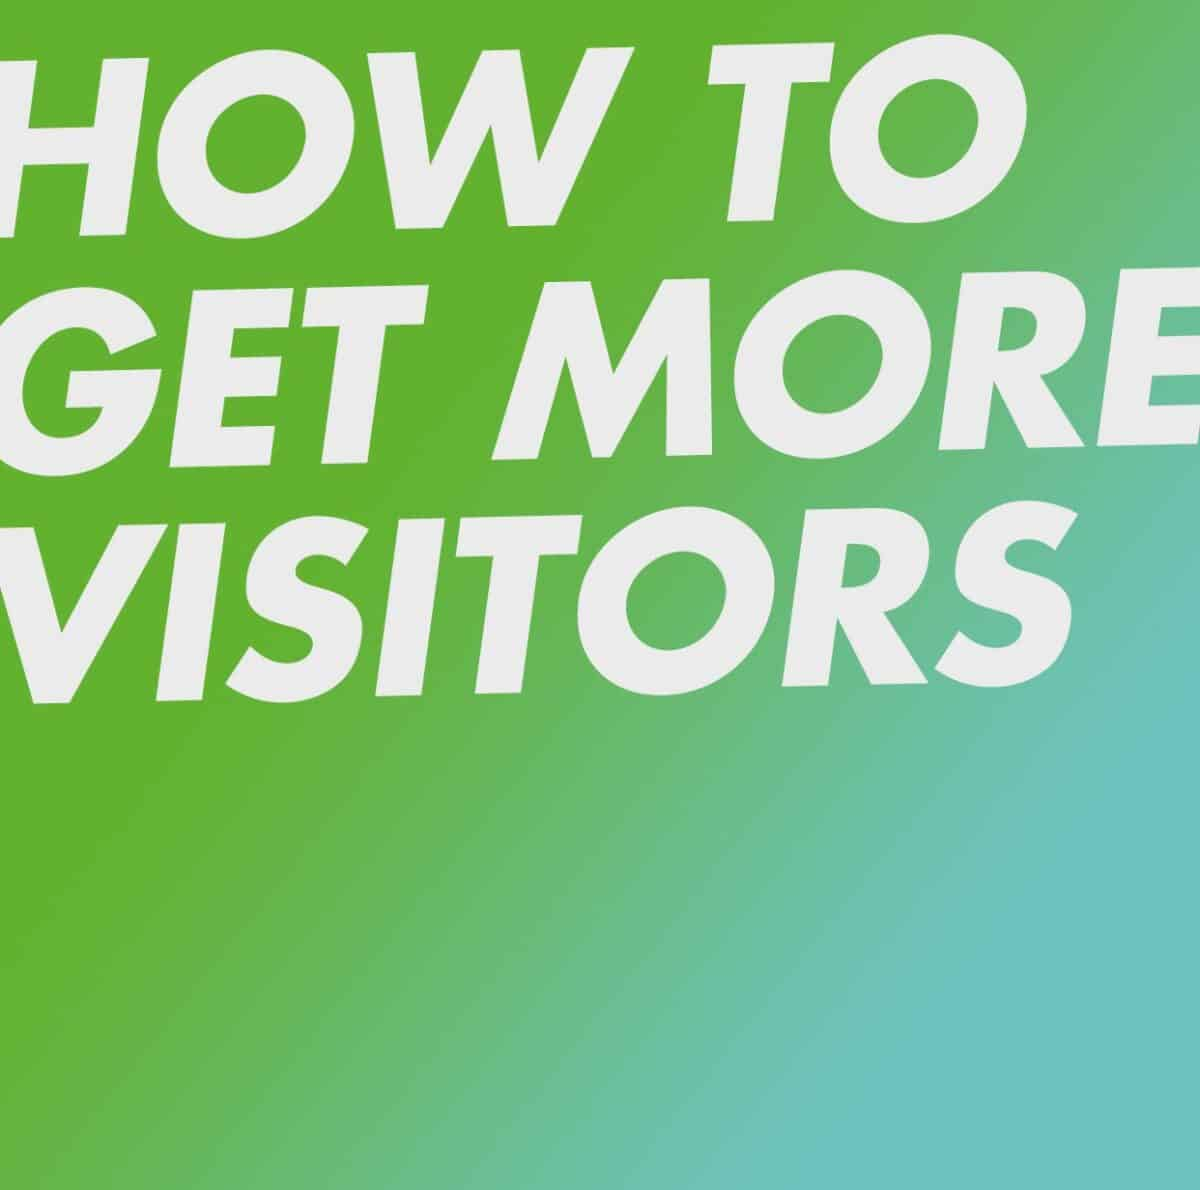 How to get more visitors to your website